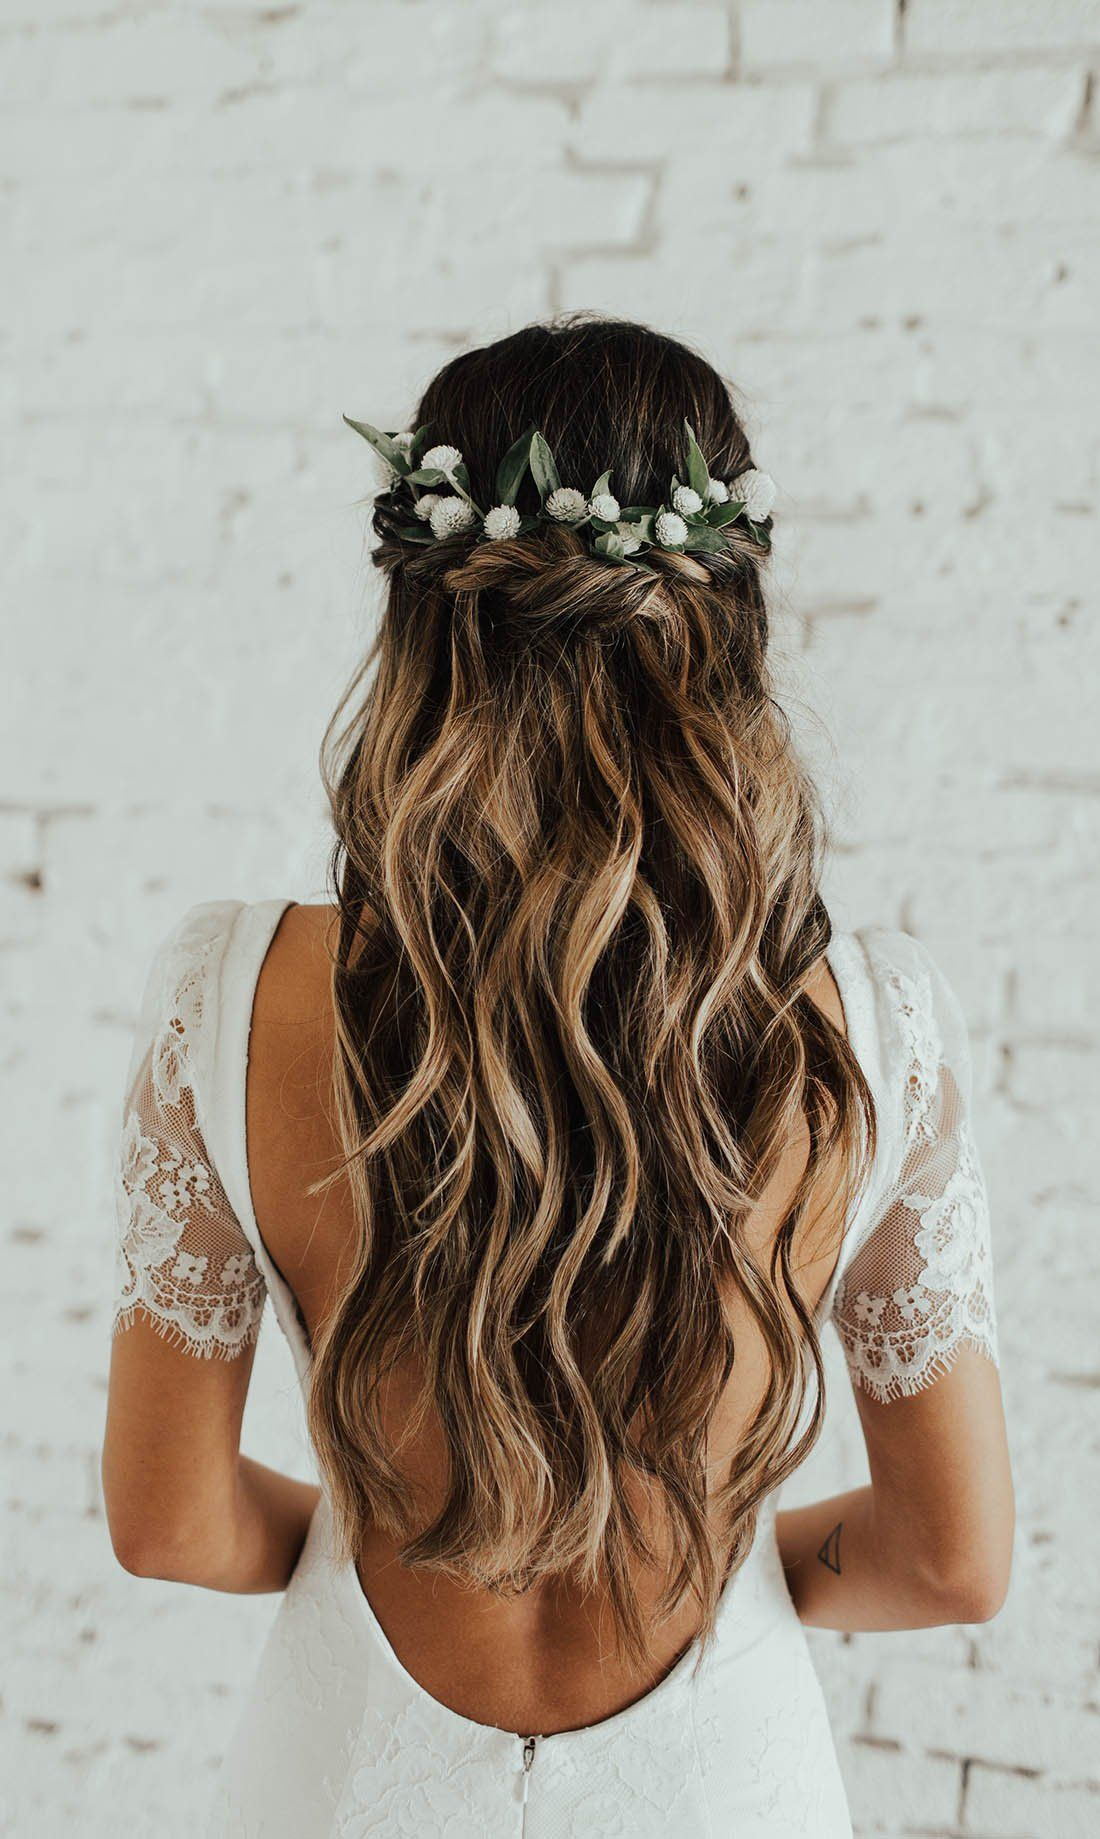 Boho Wedding Hairstyles To Inspire Flower Crown Hairstyle Long Hair Styles Wedding Hair Down